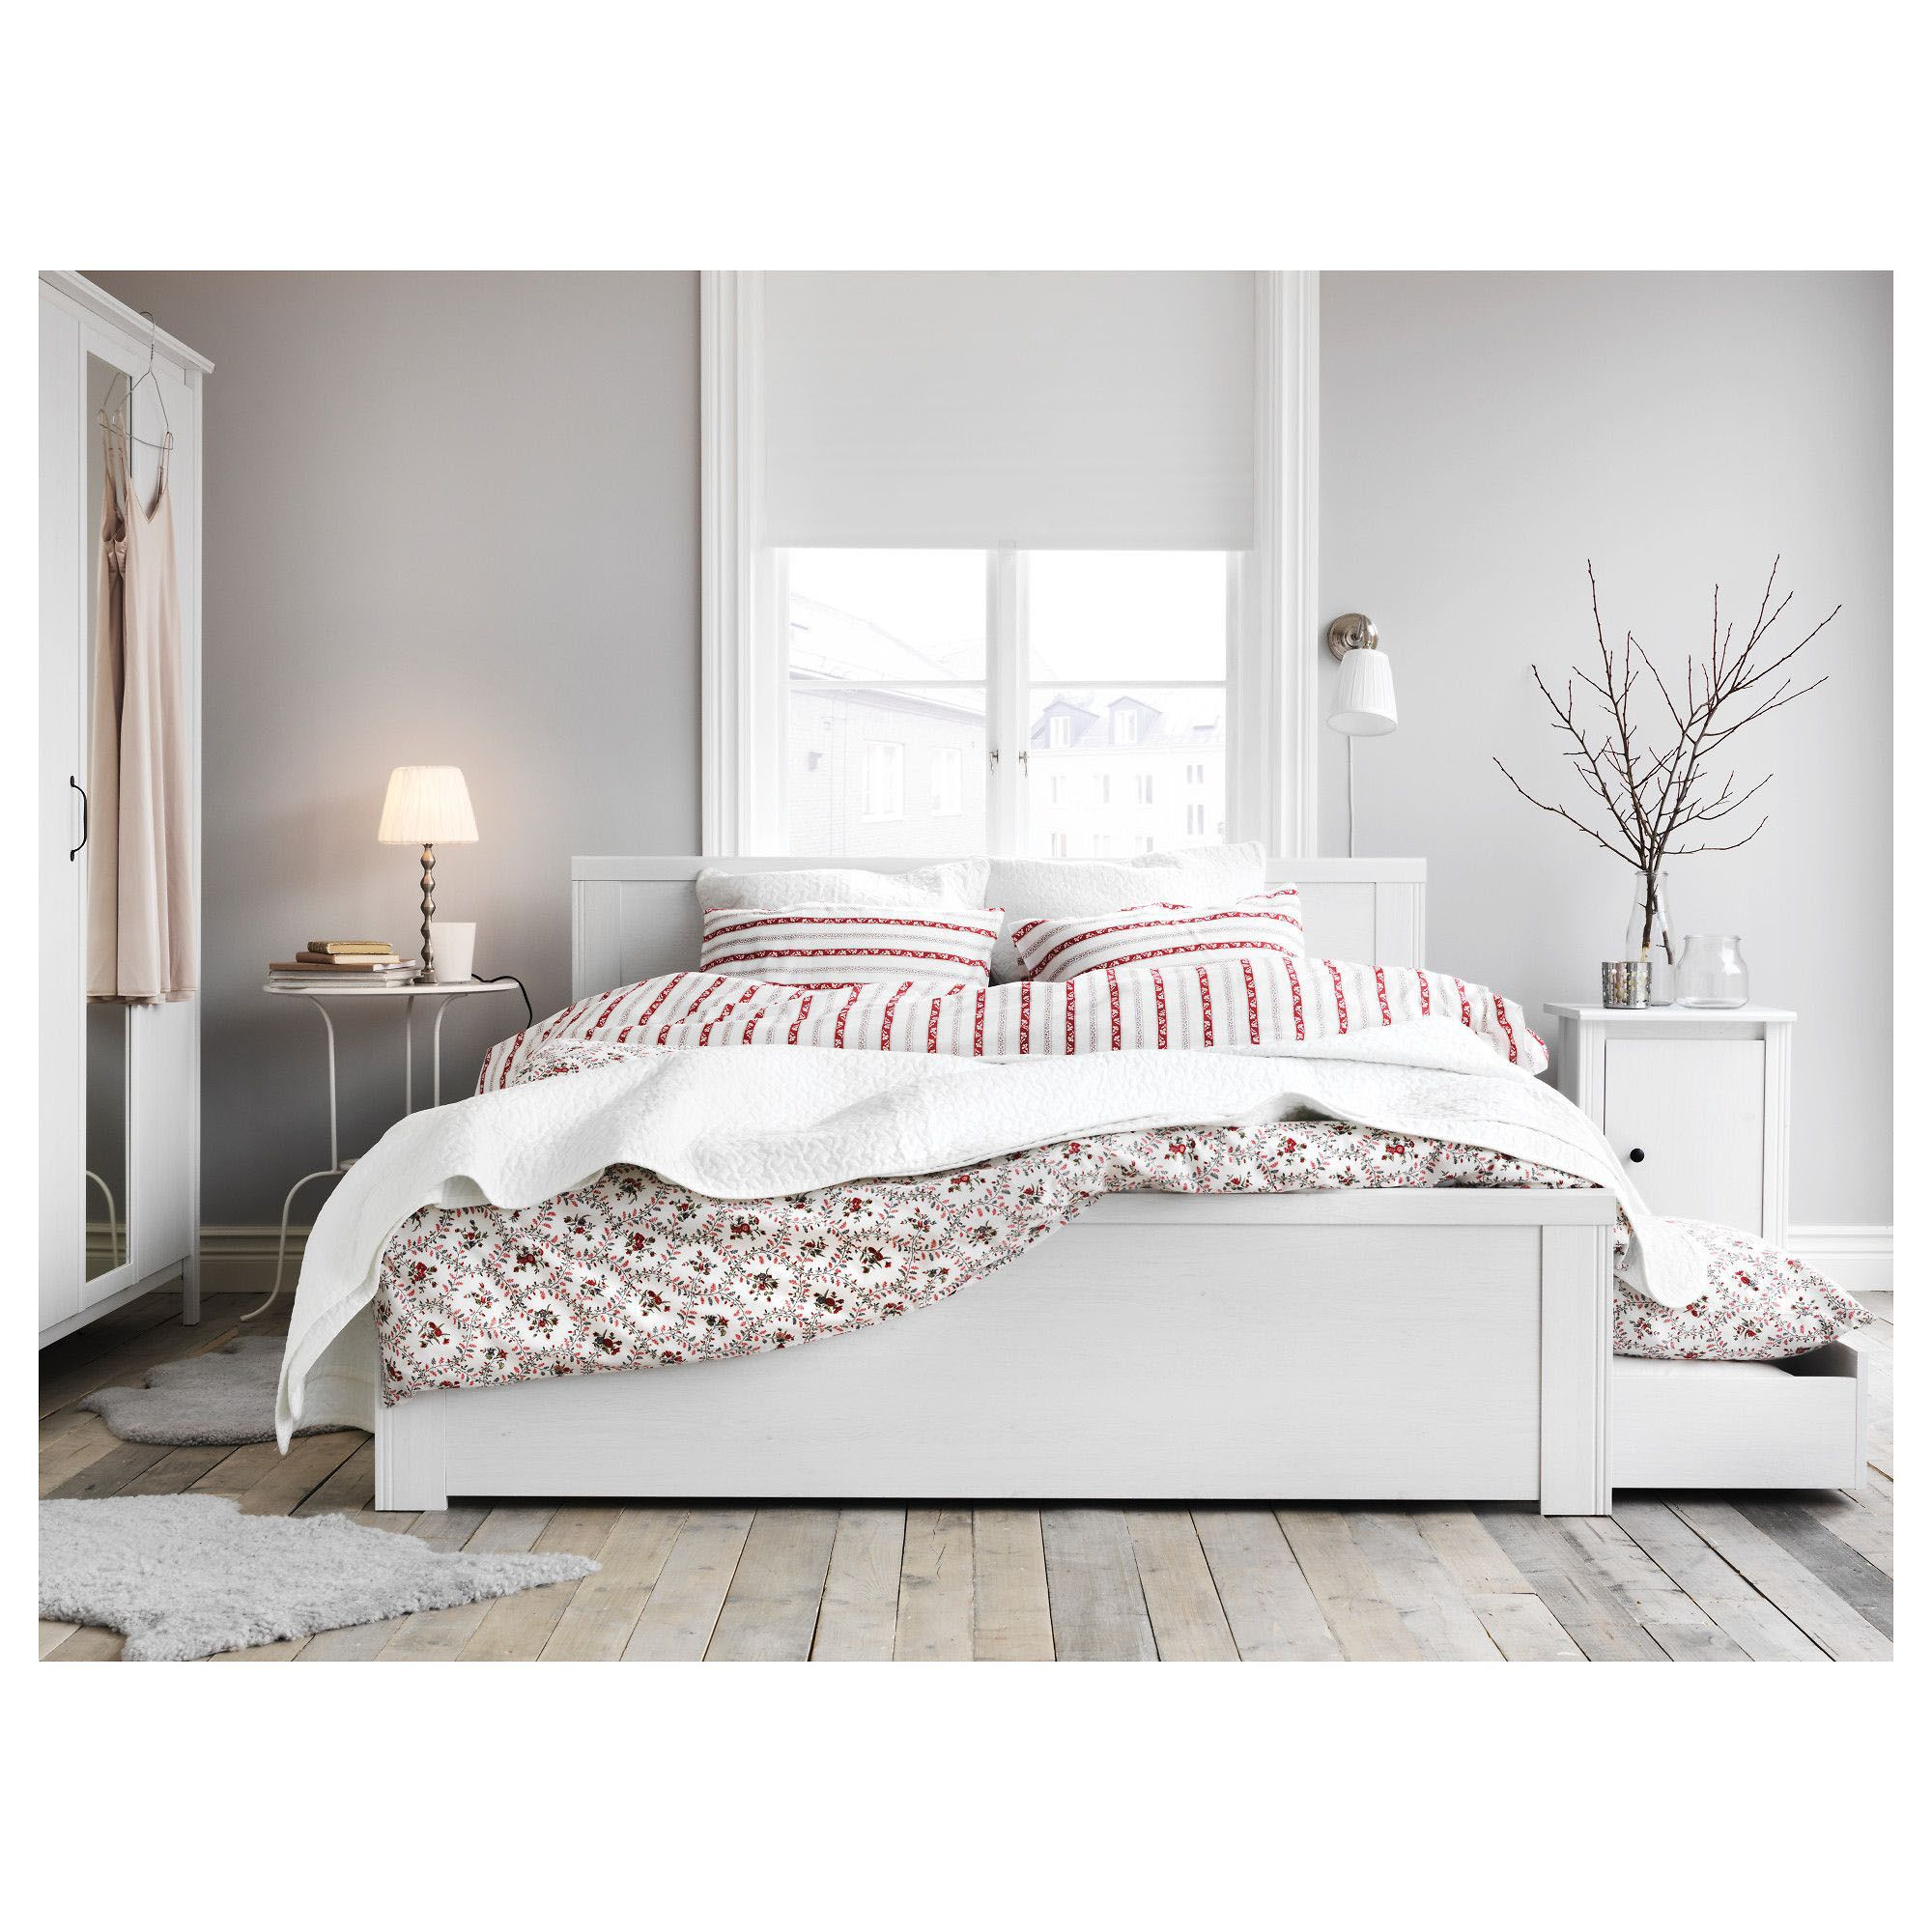 Find Your Peacefulness With These White Room Concepts White Bed